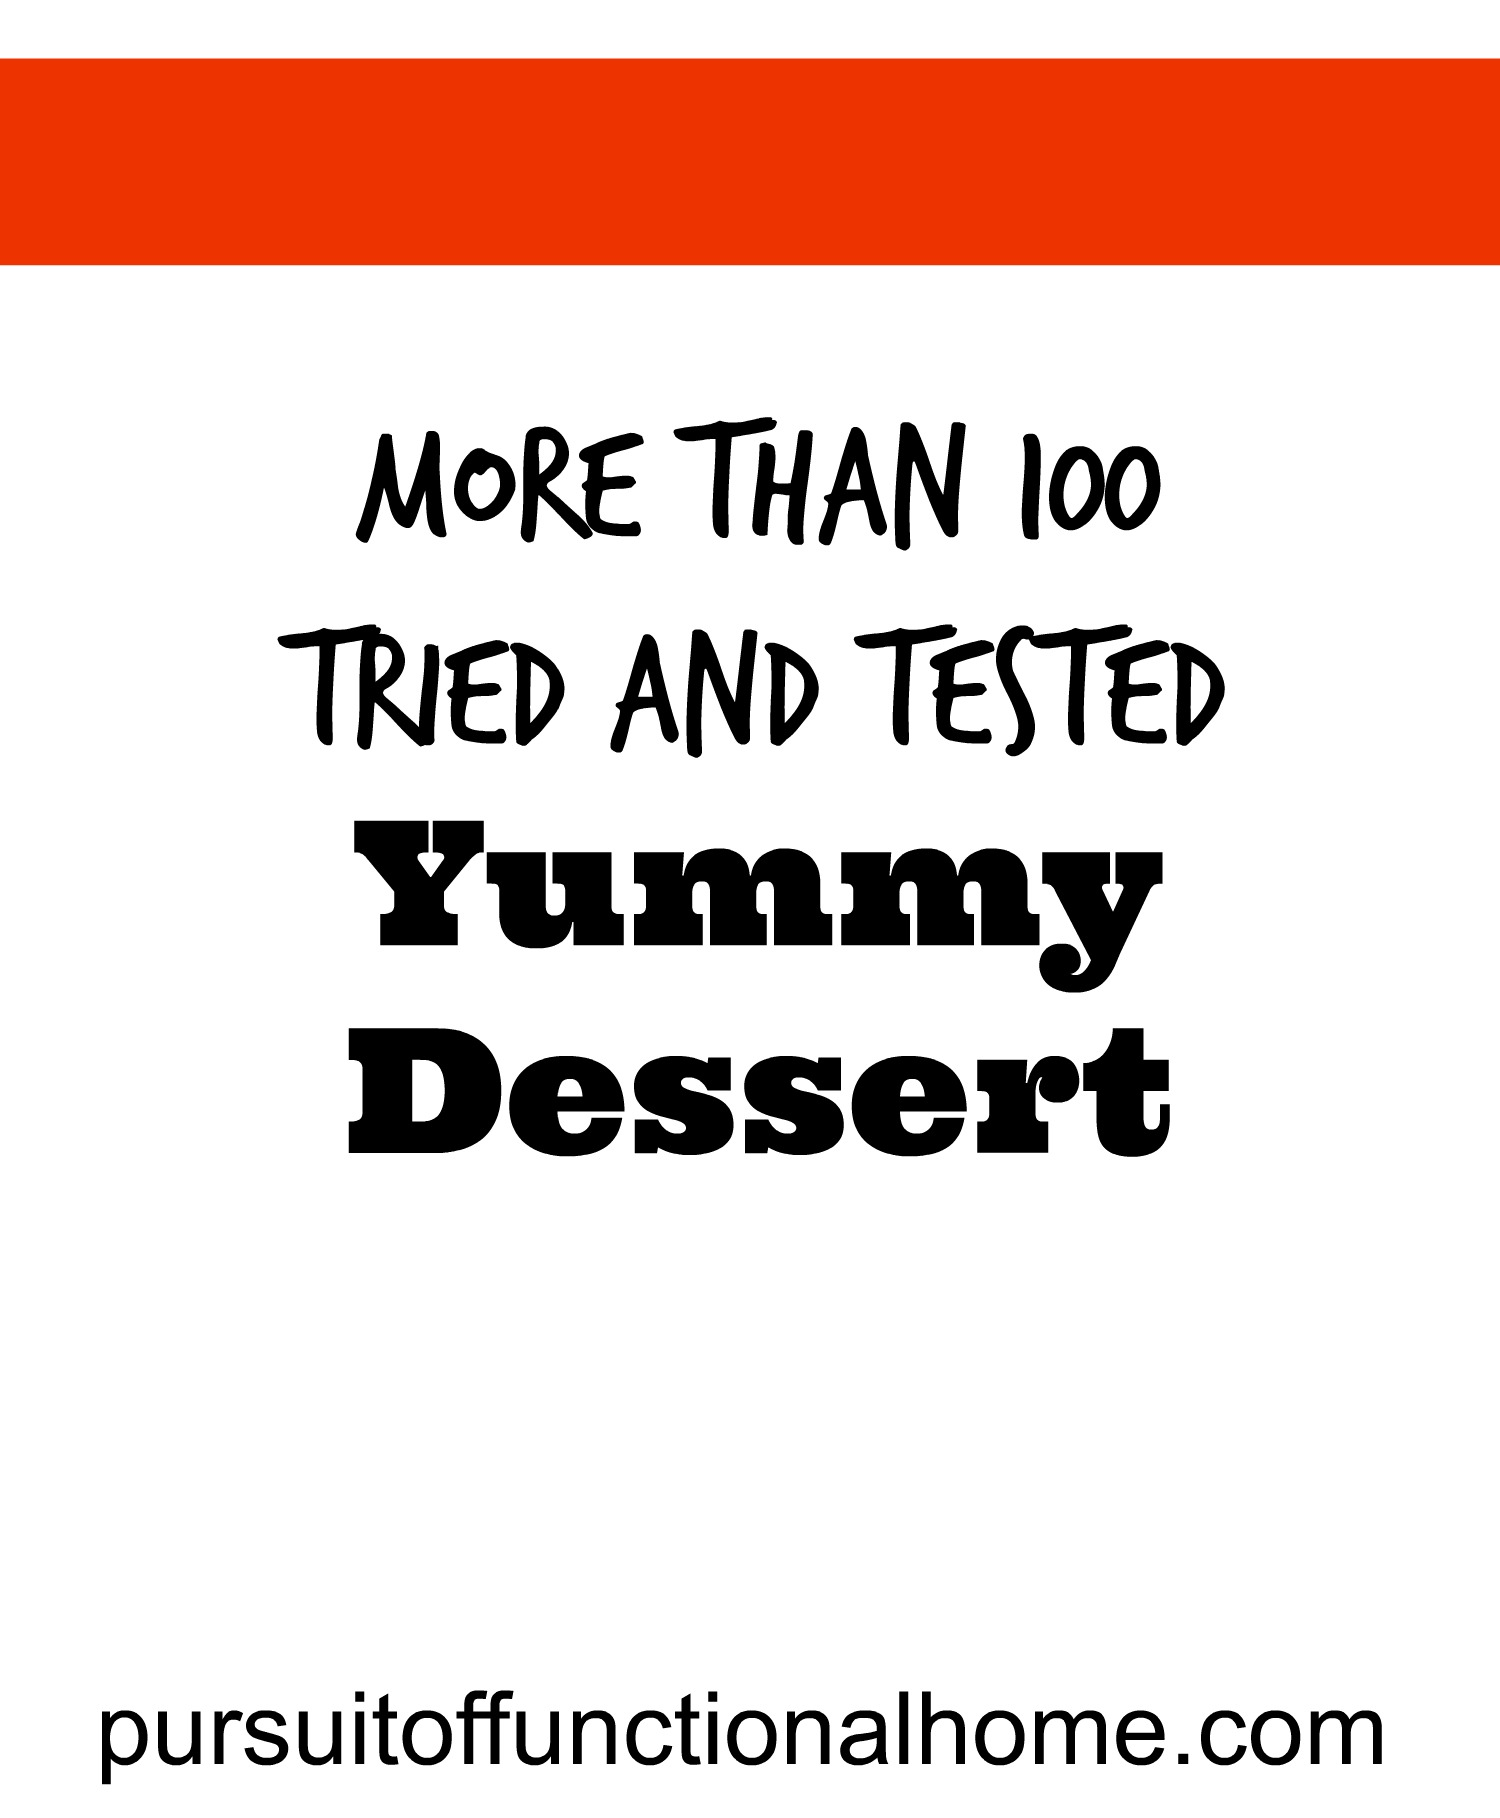 More than 100 Tried and tested Yummy Dessert